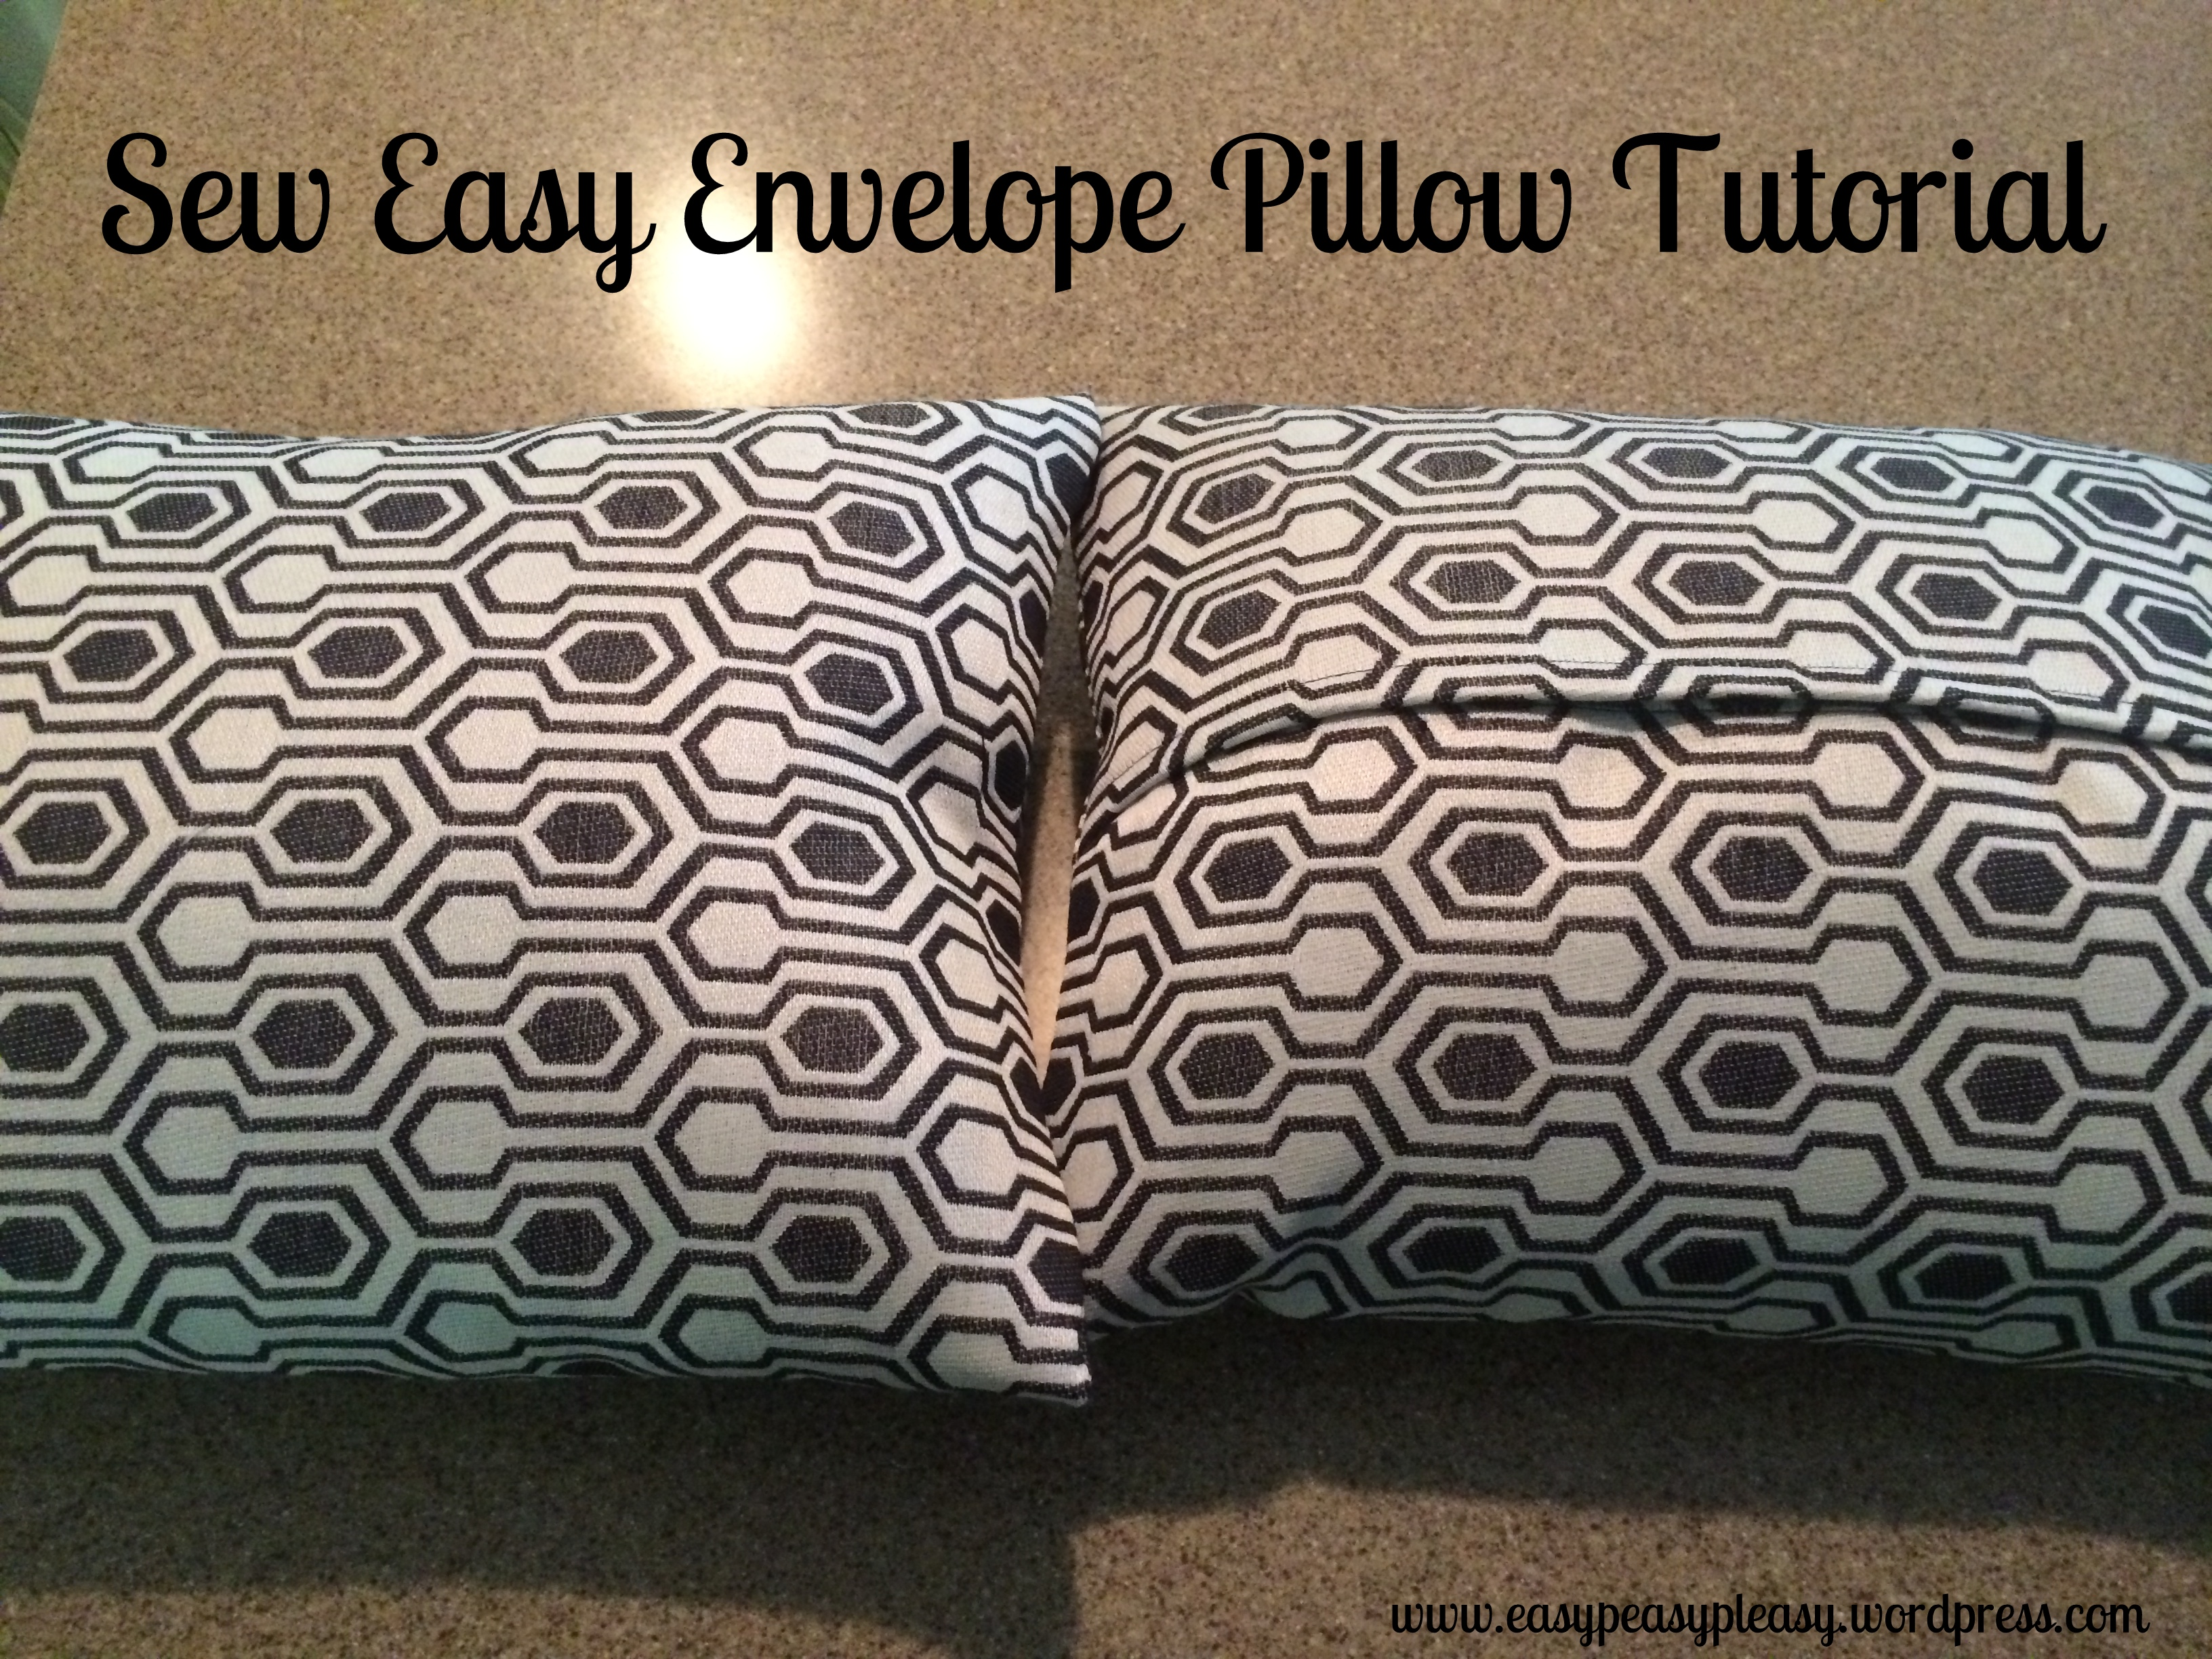 Sew Easy Envelope Pillow Tutorial At Easypeasypleasywordpress 001